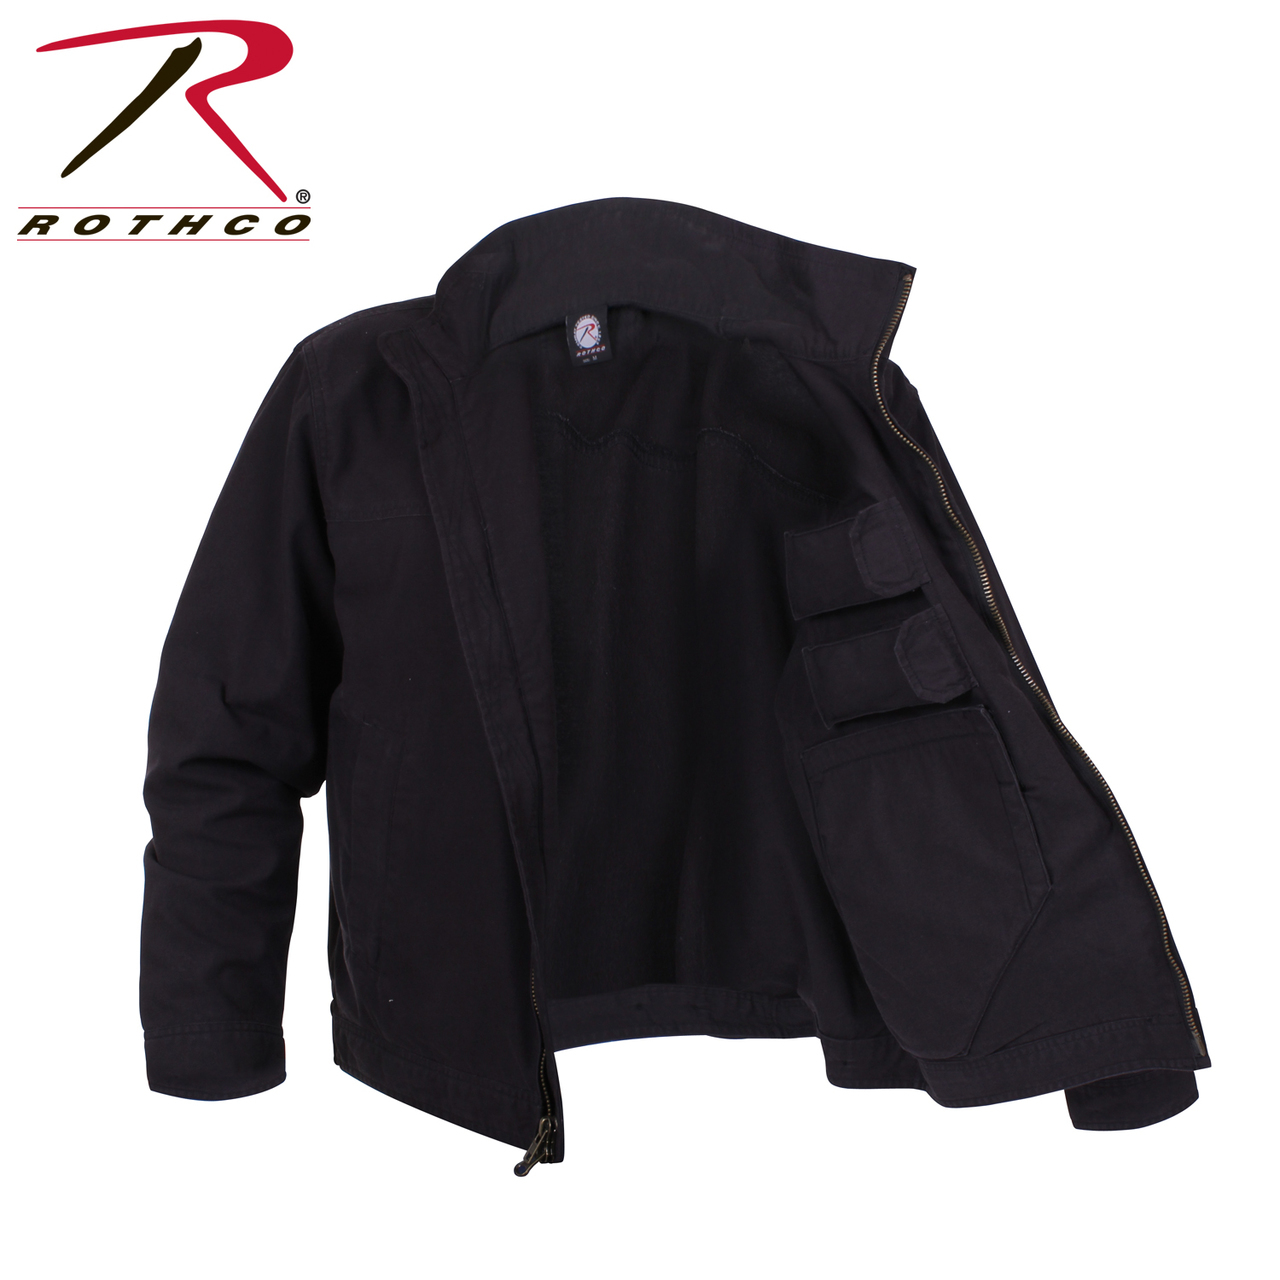 Rothco's Lightweight Concealed Carry Jacket has 2 inner pockets for concealed carry, one on each side, as well as 2 inner mag pockets on each side for ammo. The mirroring pockets on both the left and right, give the jacket a unique ambidextrous feature. This tactical jacket is made from a lightweight cotton/polyester blend and features 2 zippered front pockets & adjustable button wrist closures.